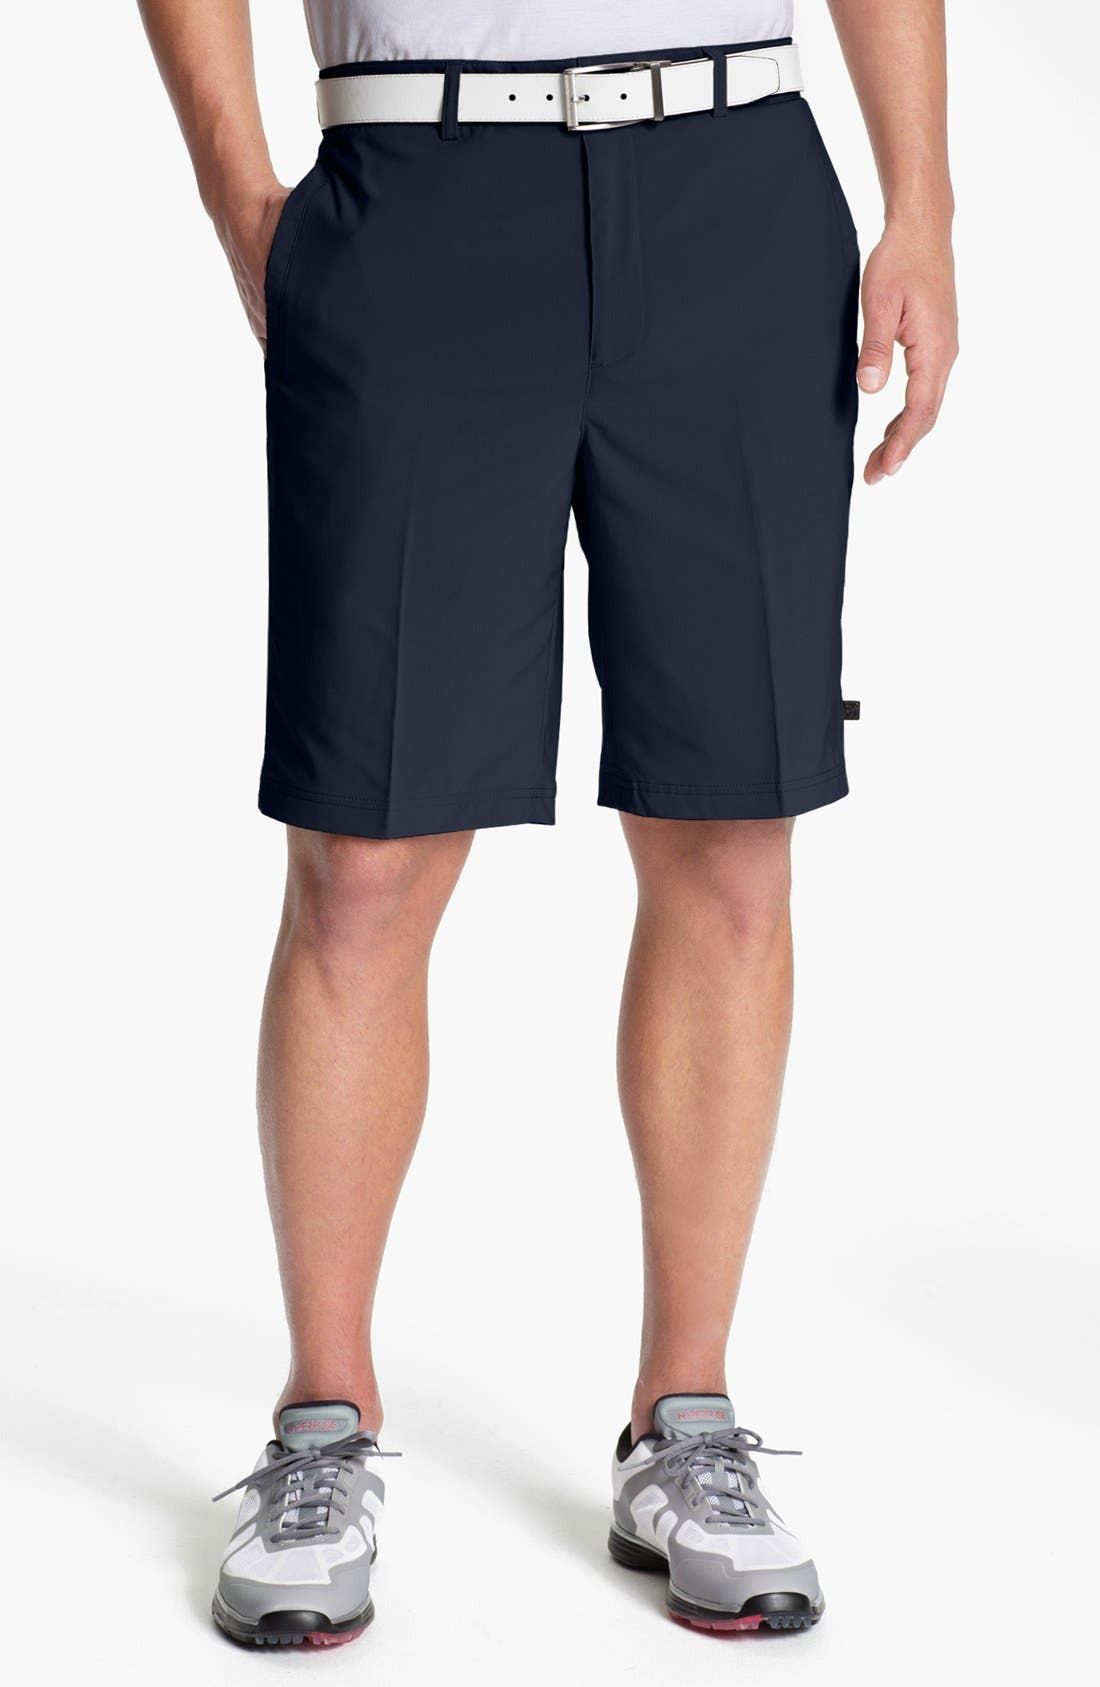 Alternate Image 1 Selected - Zero Restriction 'Links Tech' Golf Shorts